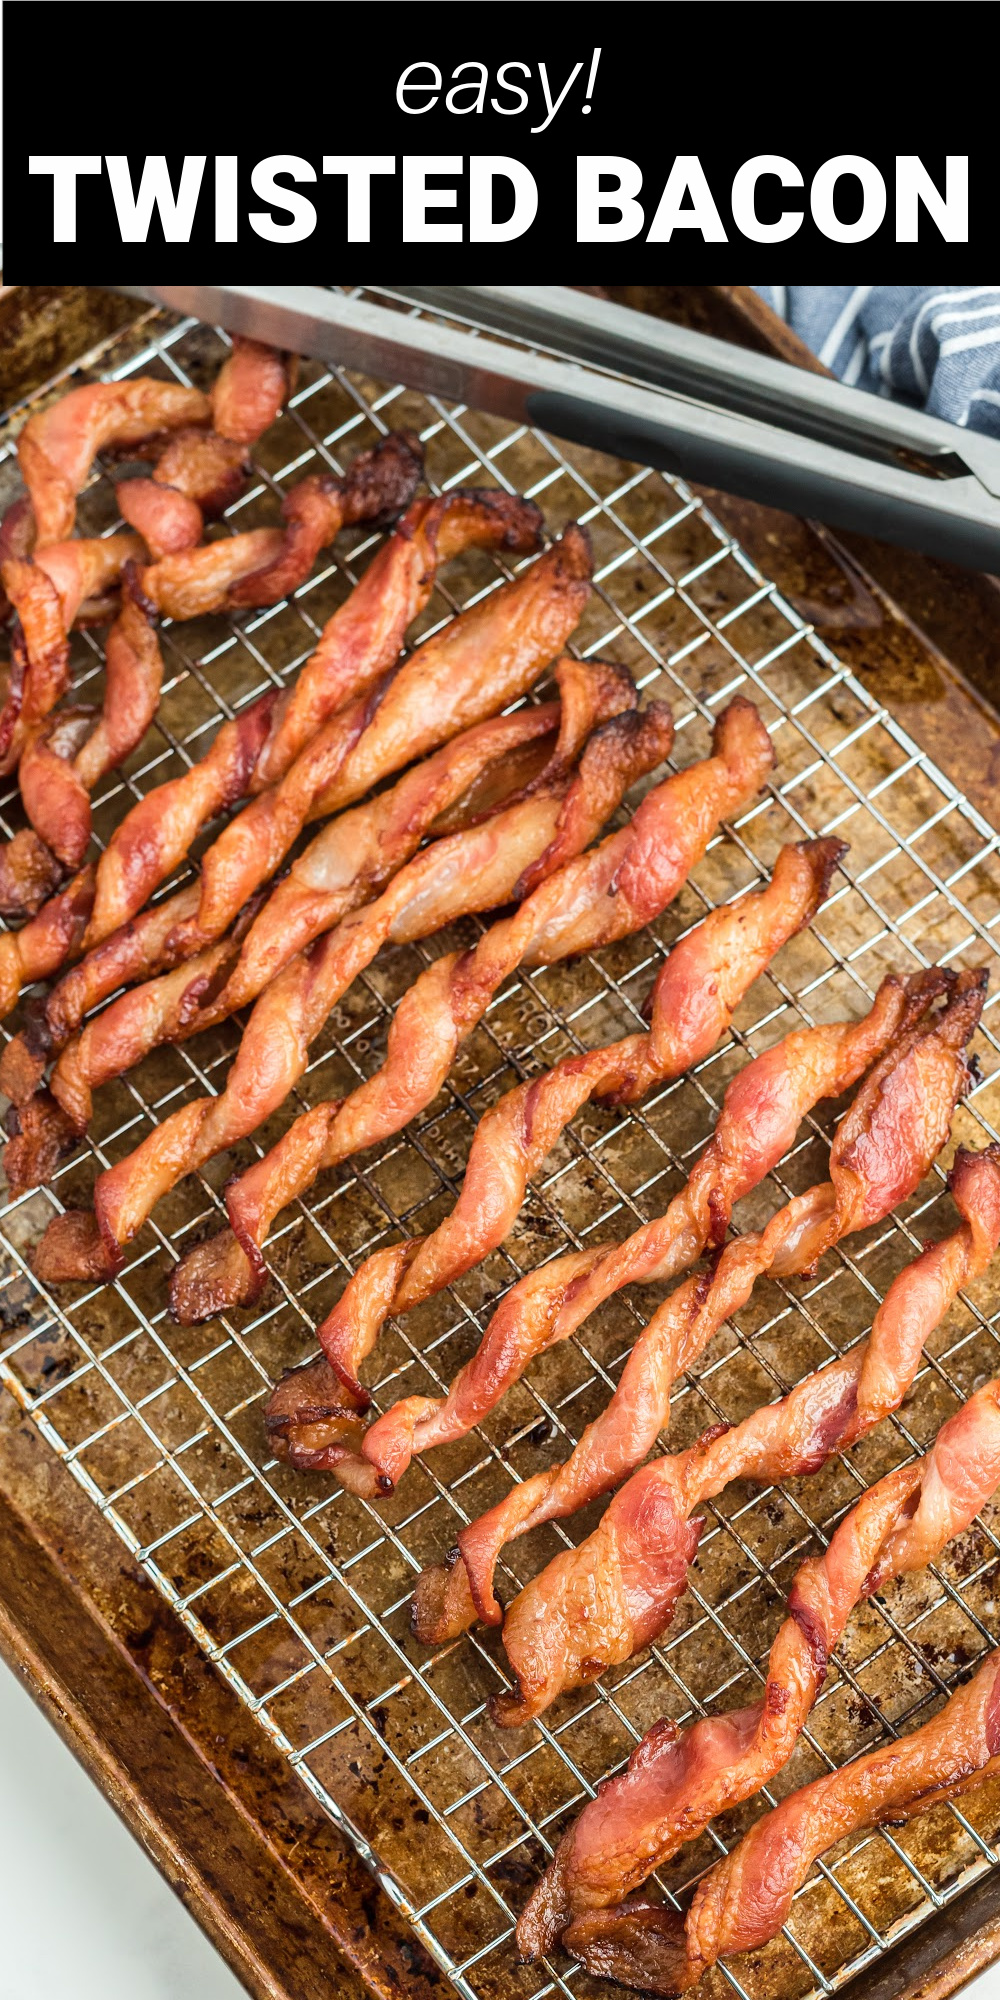 Twisted bacon is the perfect combination of crispy and chewy bacon made in the oven with less mess! This Tik Tok sensation is the best way to make bacon and after you make it once you'll know why it's here to stay!